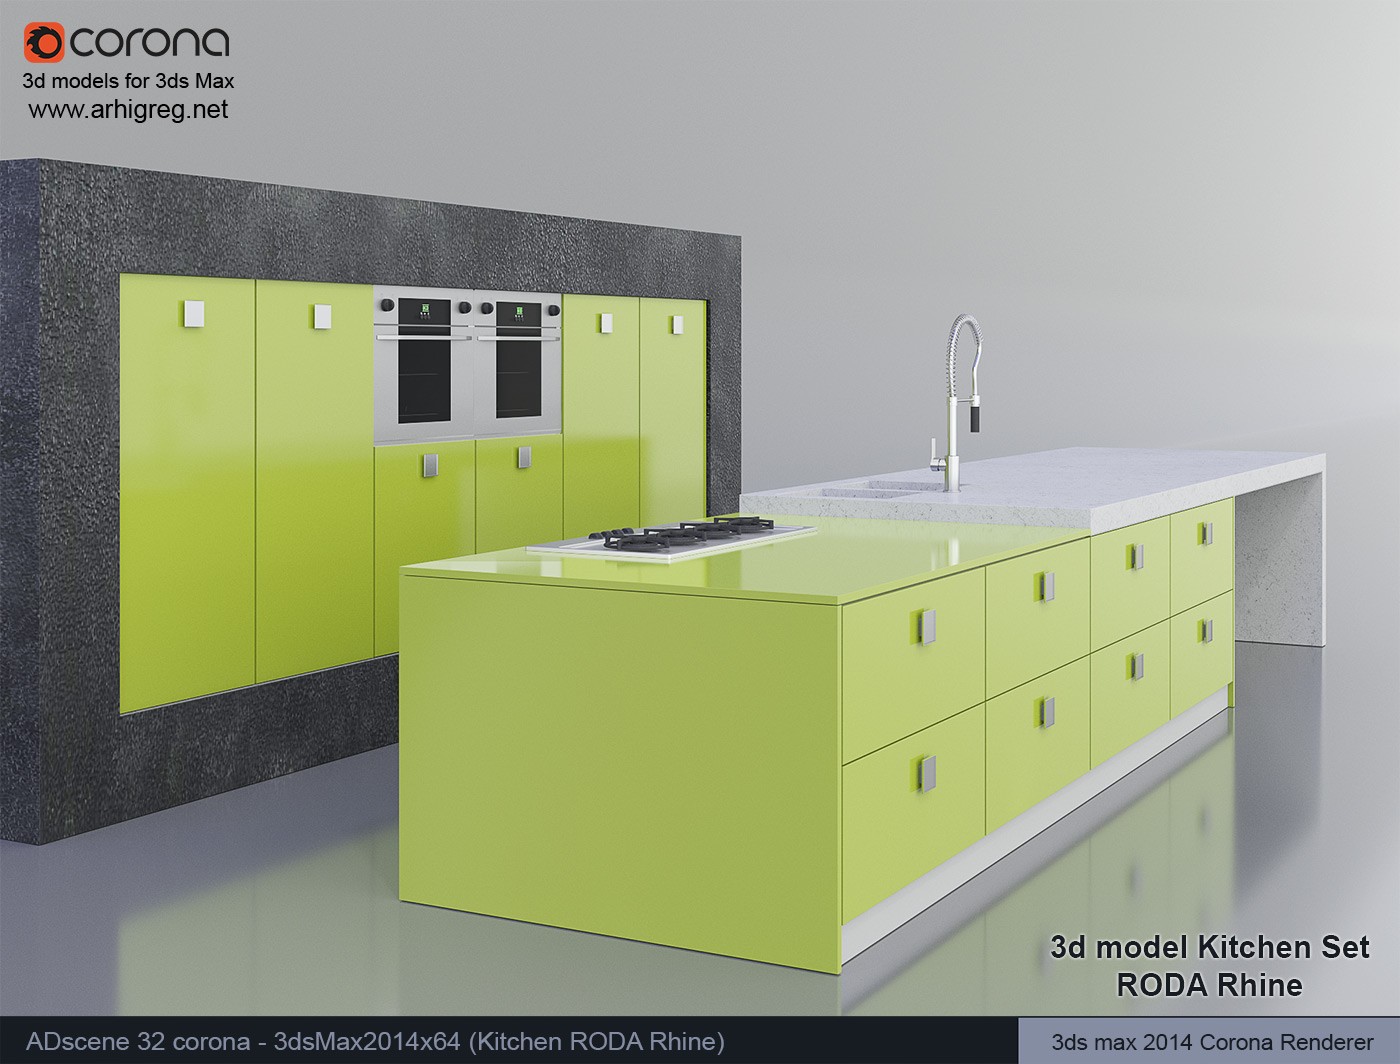 kitchen design 3d model. Download 3d model Kitchen Set view 3 RODA Rhine 3dsMax Corona Renderer ADscene 32 2 jpg